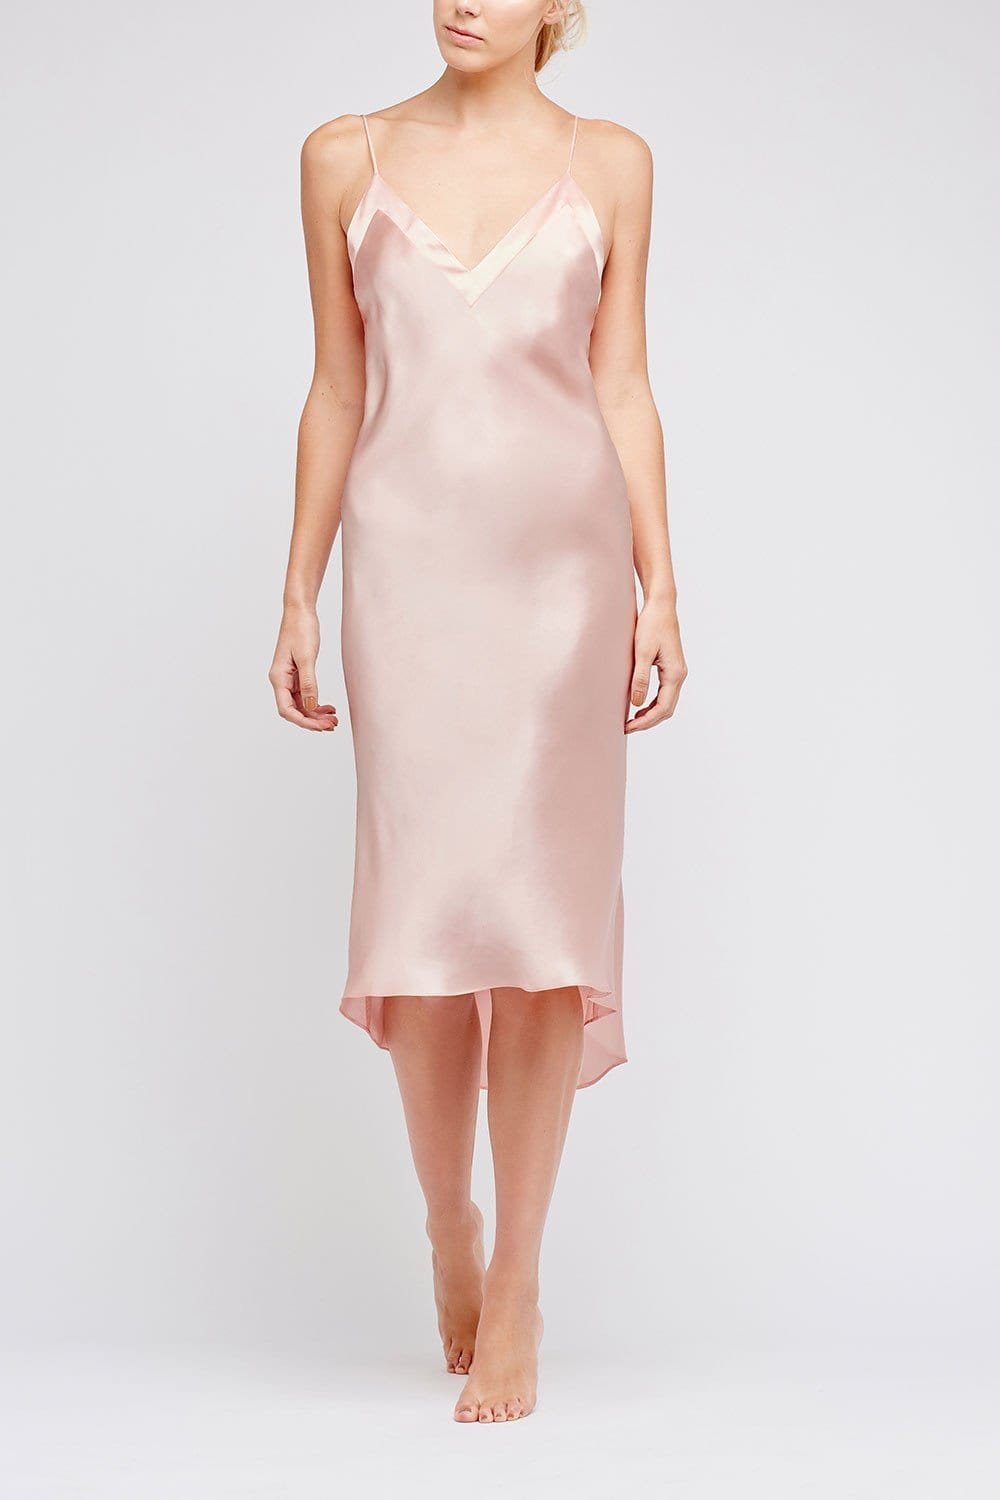 Aurora Charleston Pale Pink Silk Nightdress